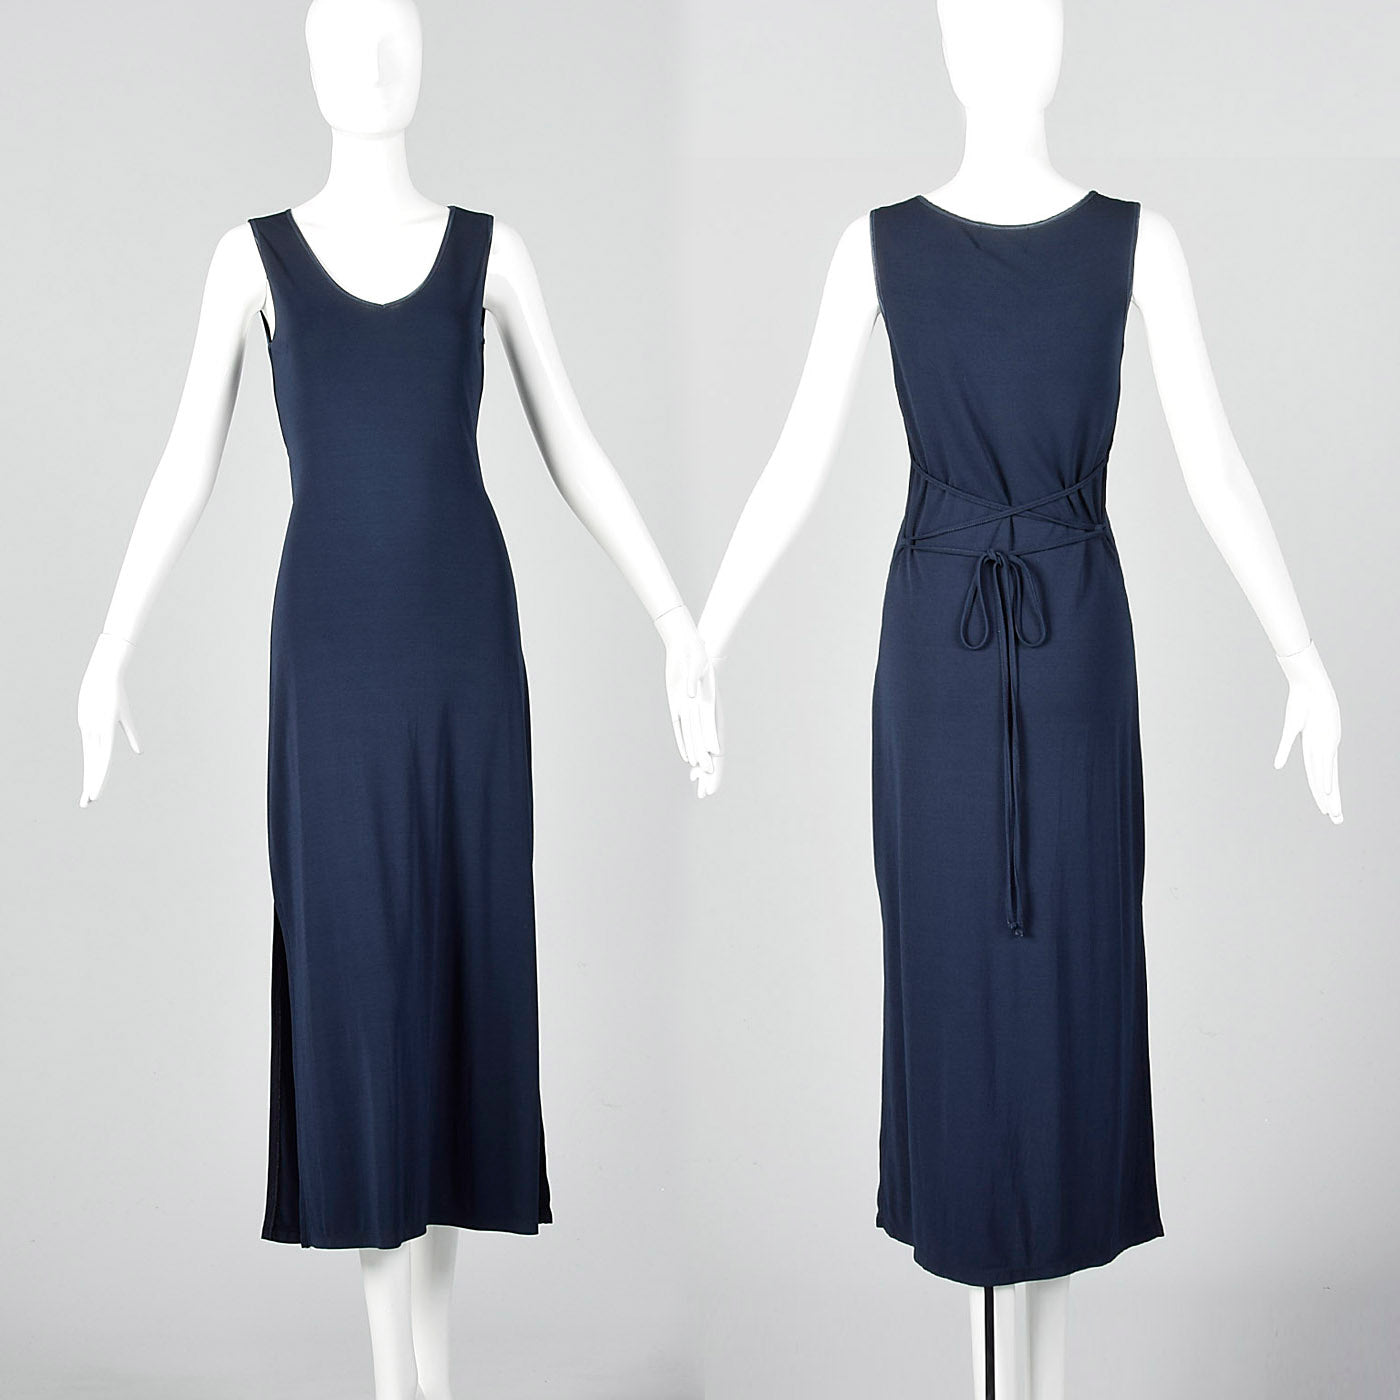 1990s Mary McFadden Maxi Dress with Tie Back Waist